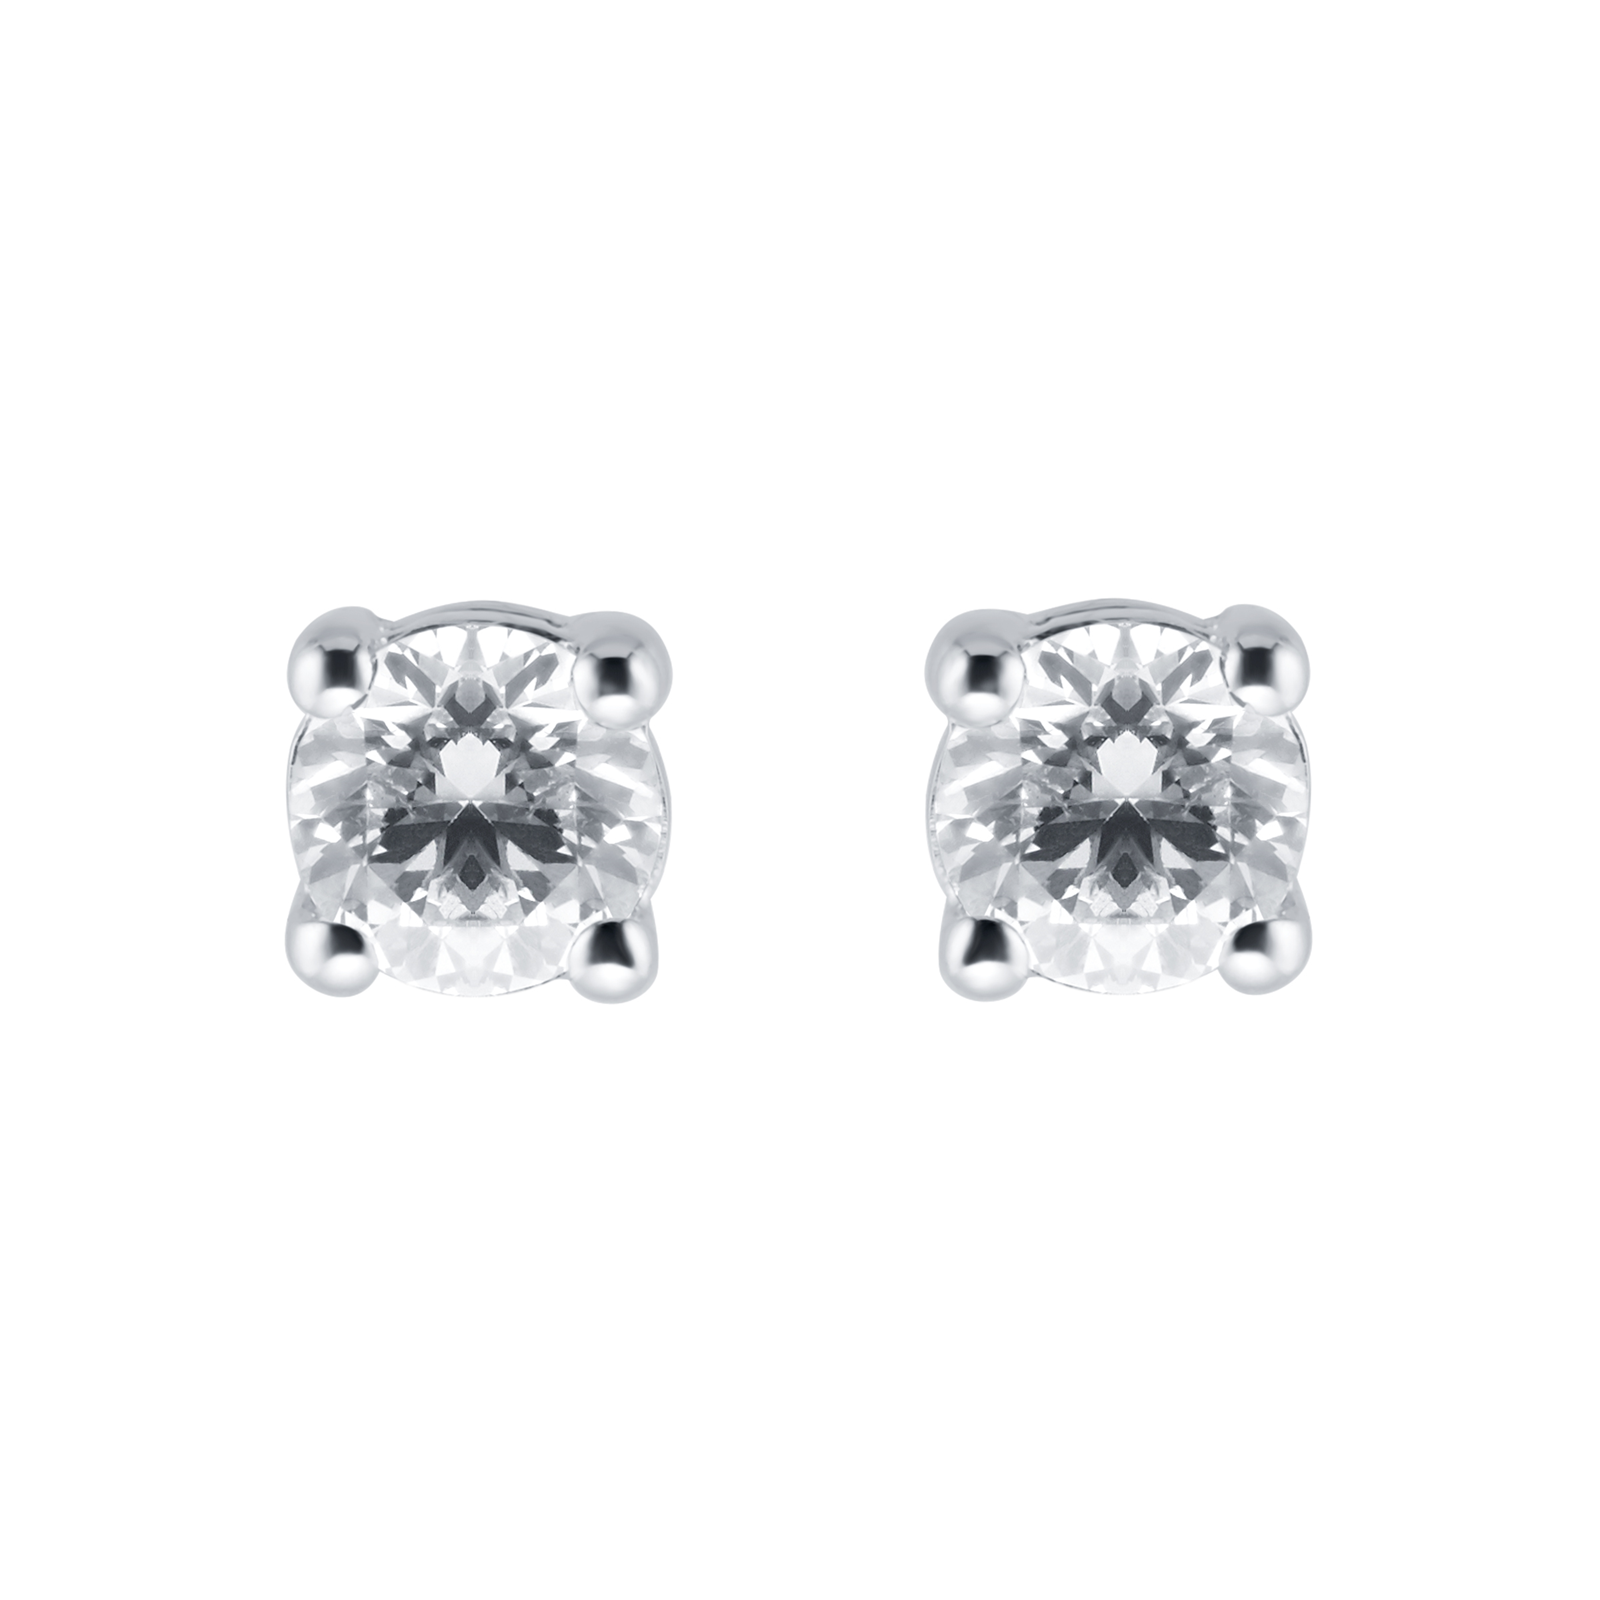 stone zirconia cz in earrings ct round screw stud with cut assented cubic back